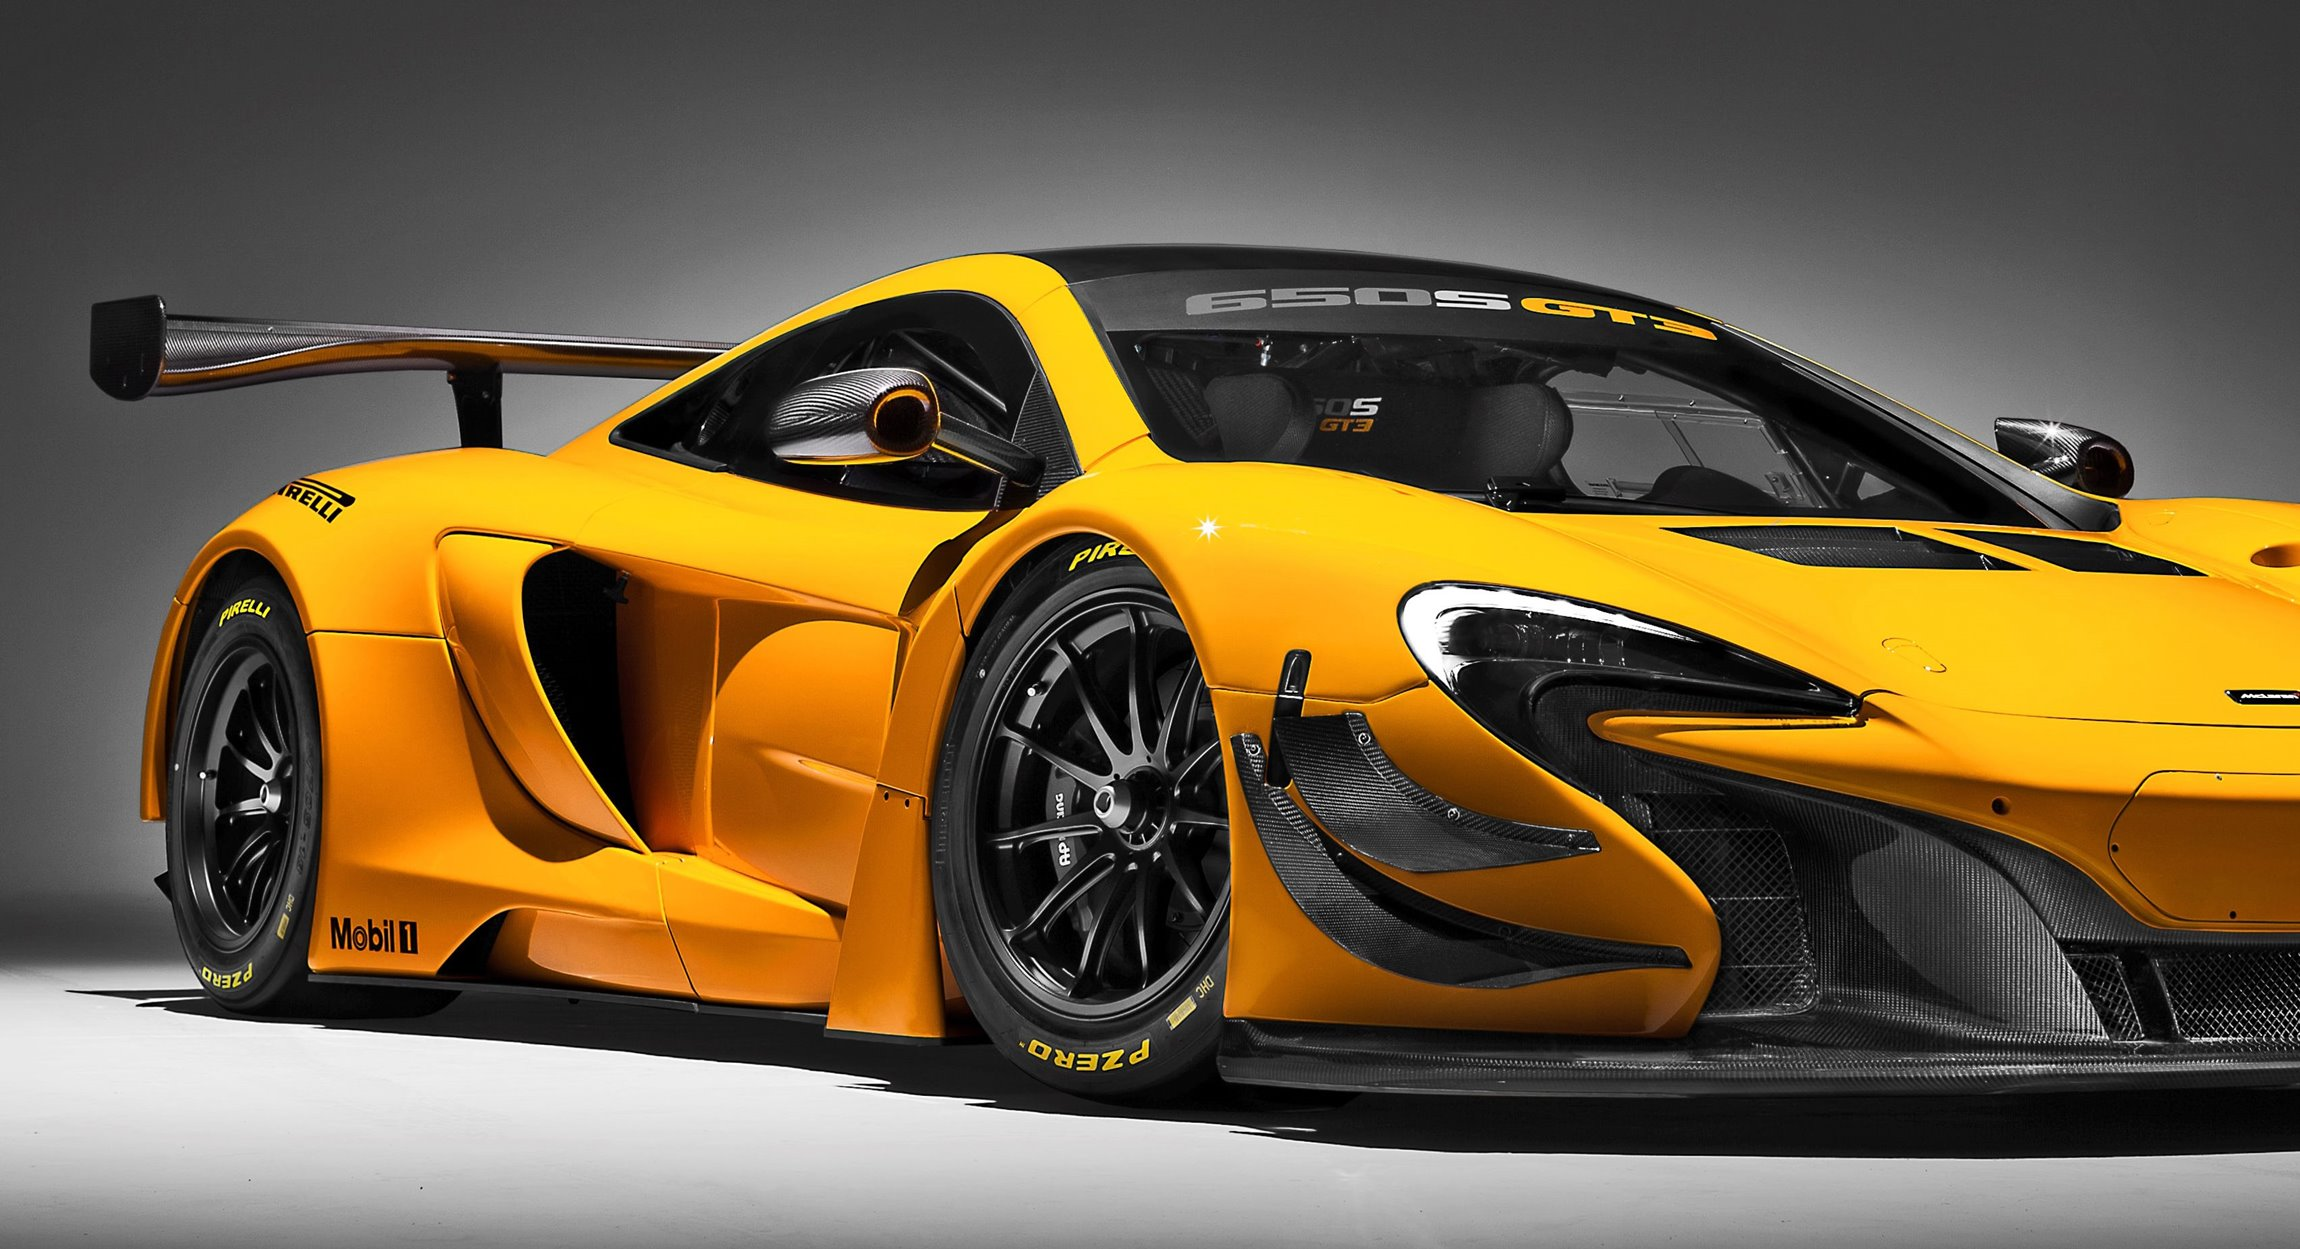 Lava Orange Mclaren >> 2016 McLaren 650S GT3 SWEEPS Bathhurst Debut! But Race Photos Are 70s Sepia Hell – Car-Revs ...